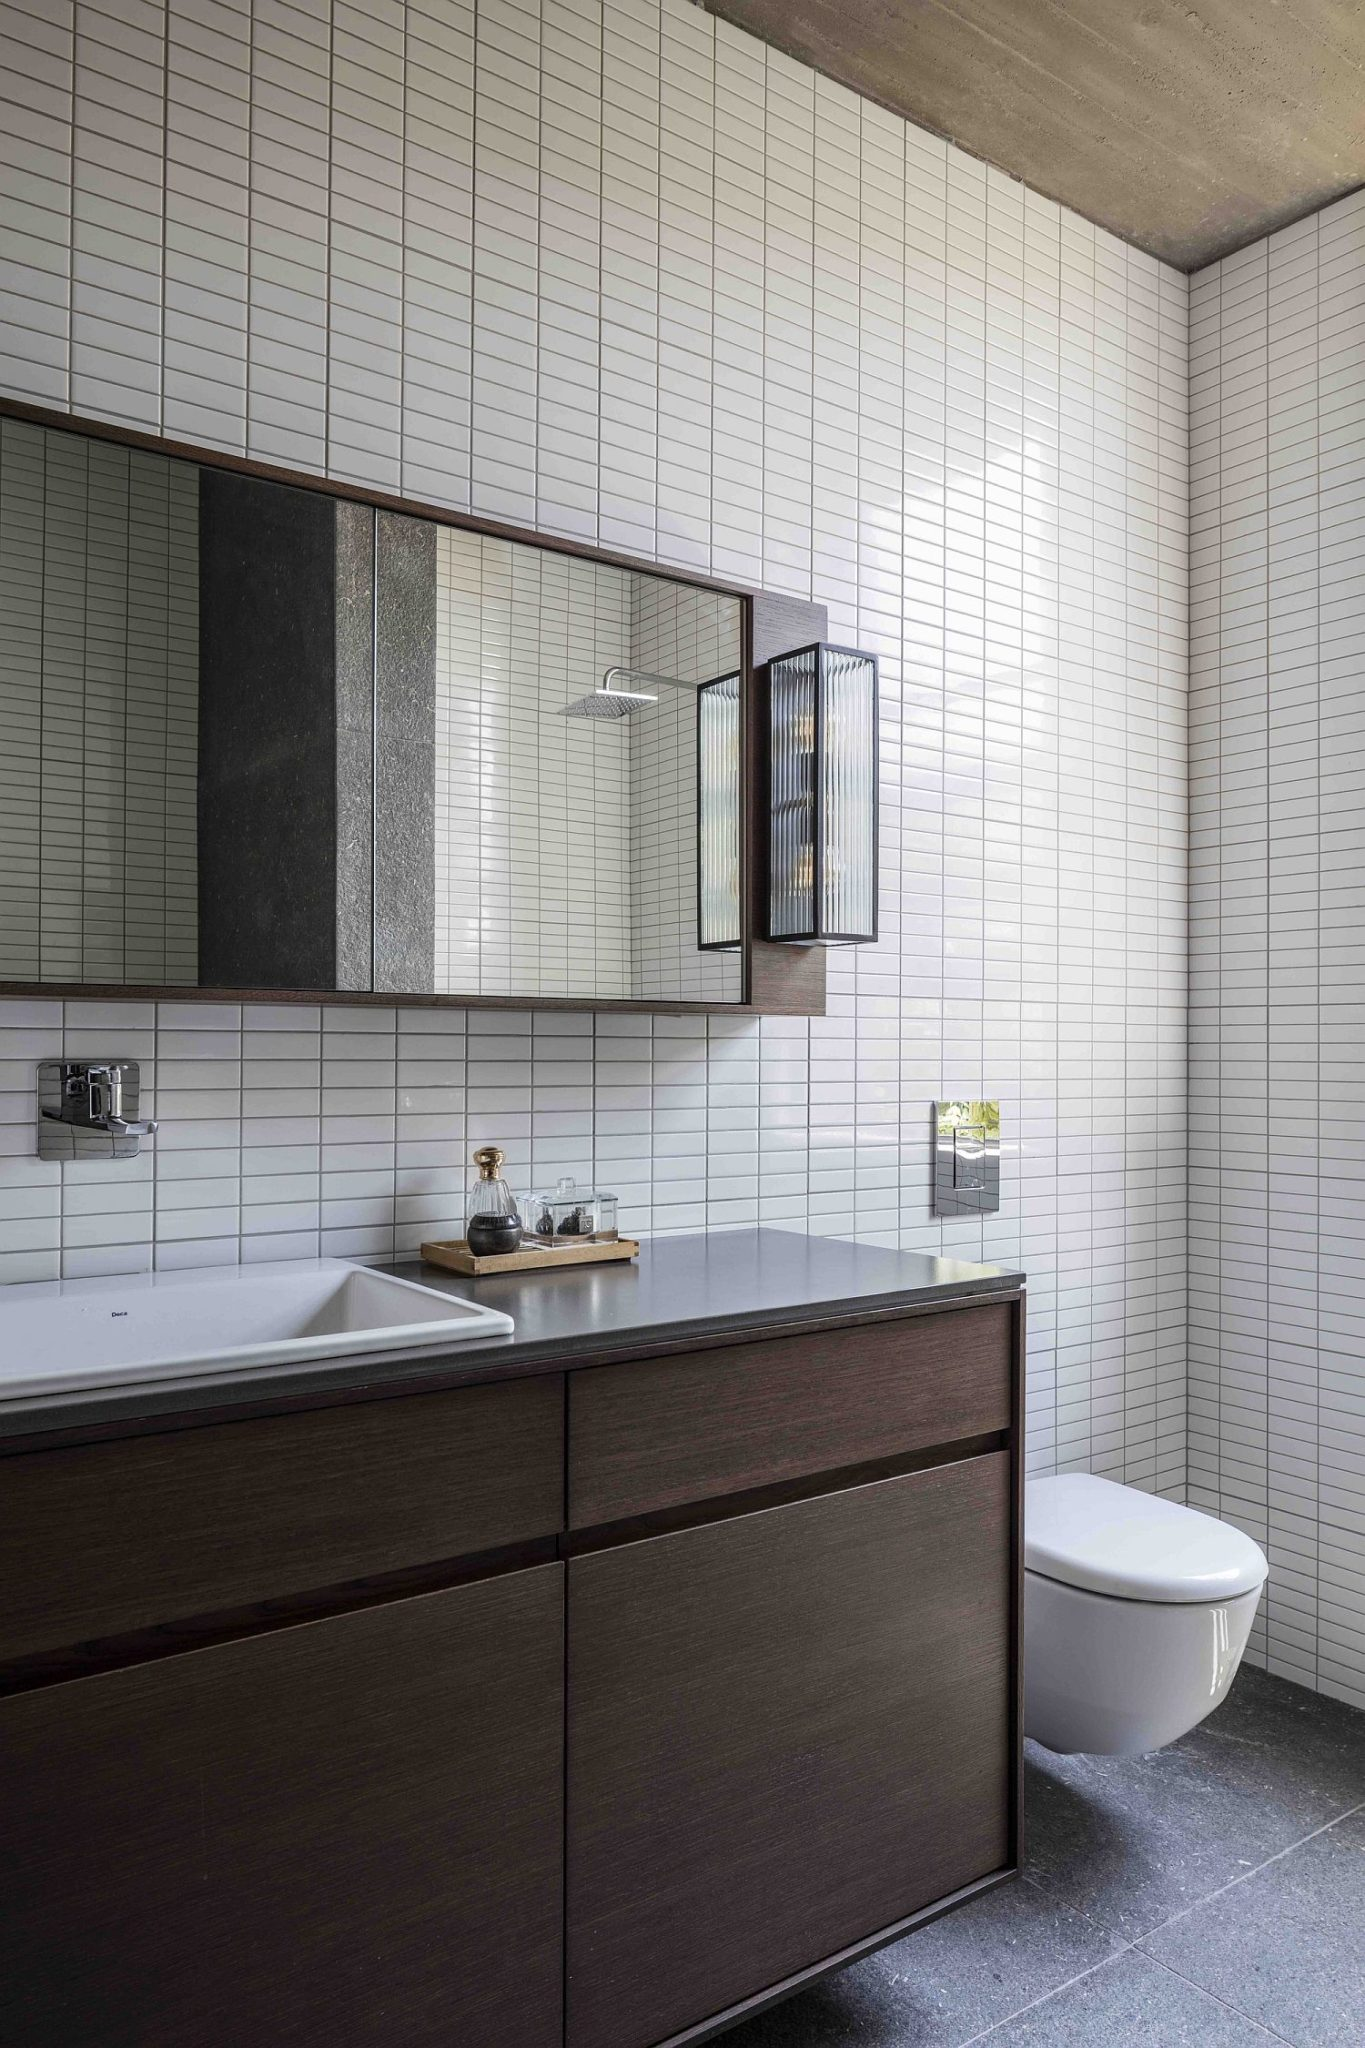 Contemporary bathroom with white tiles and a wooden vanity